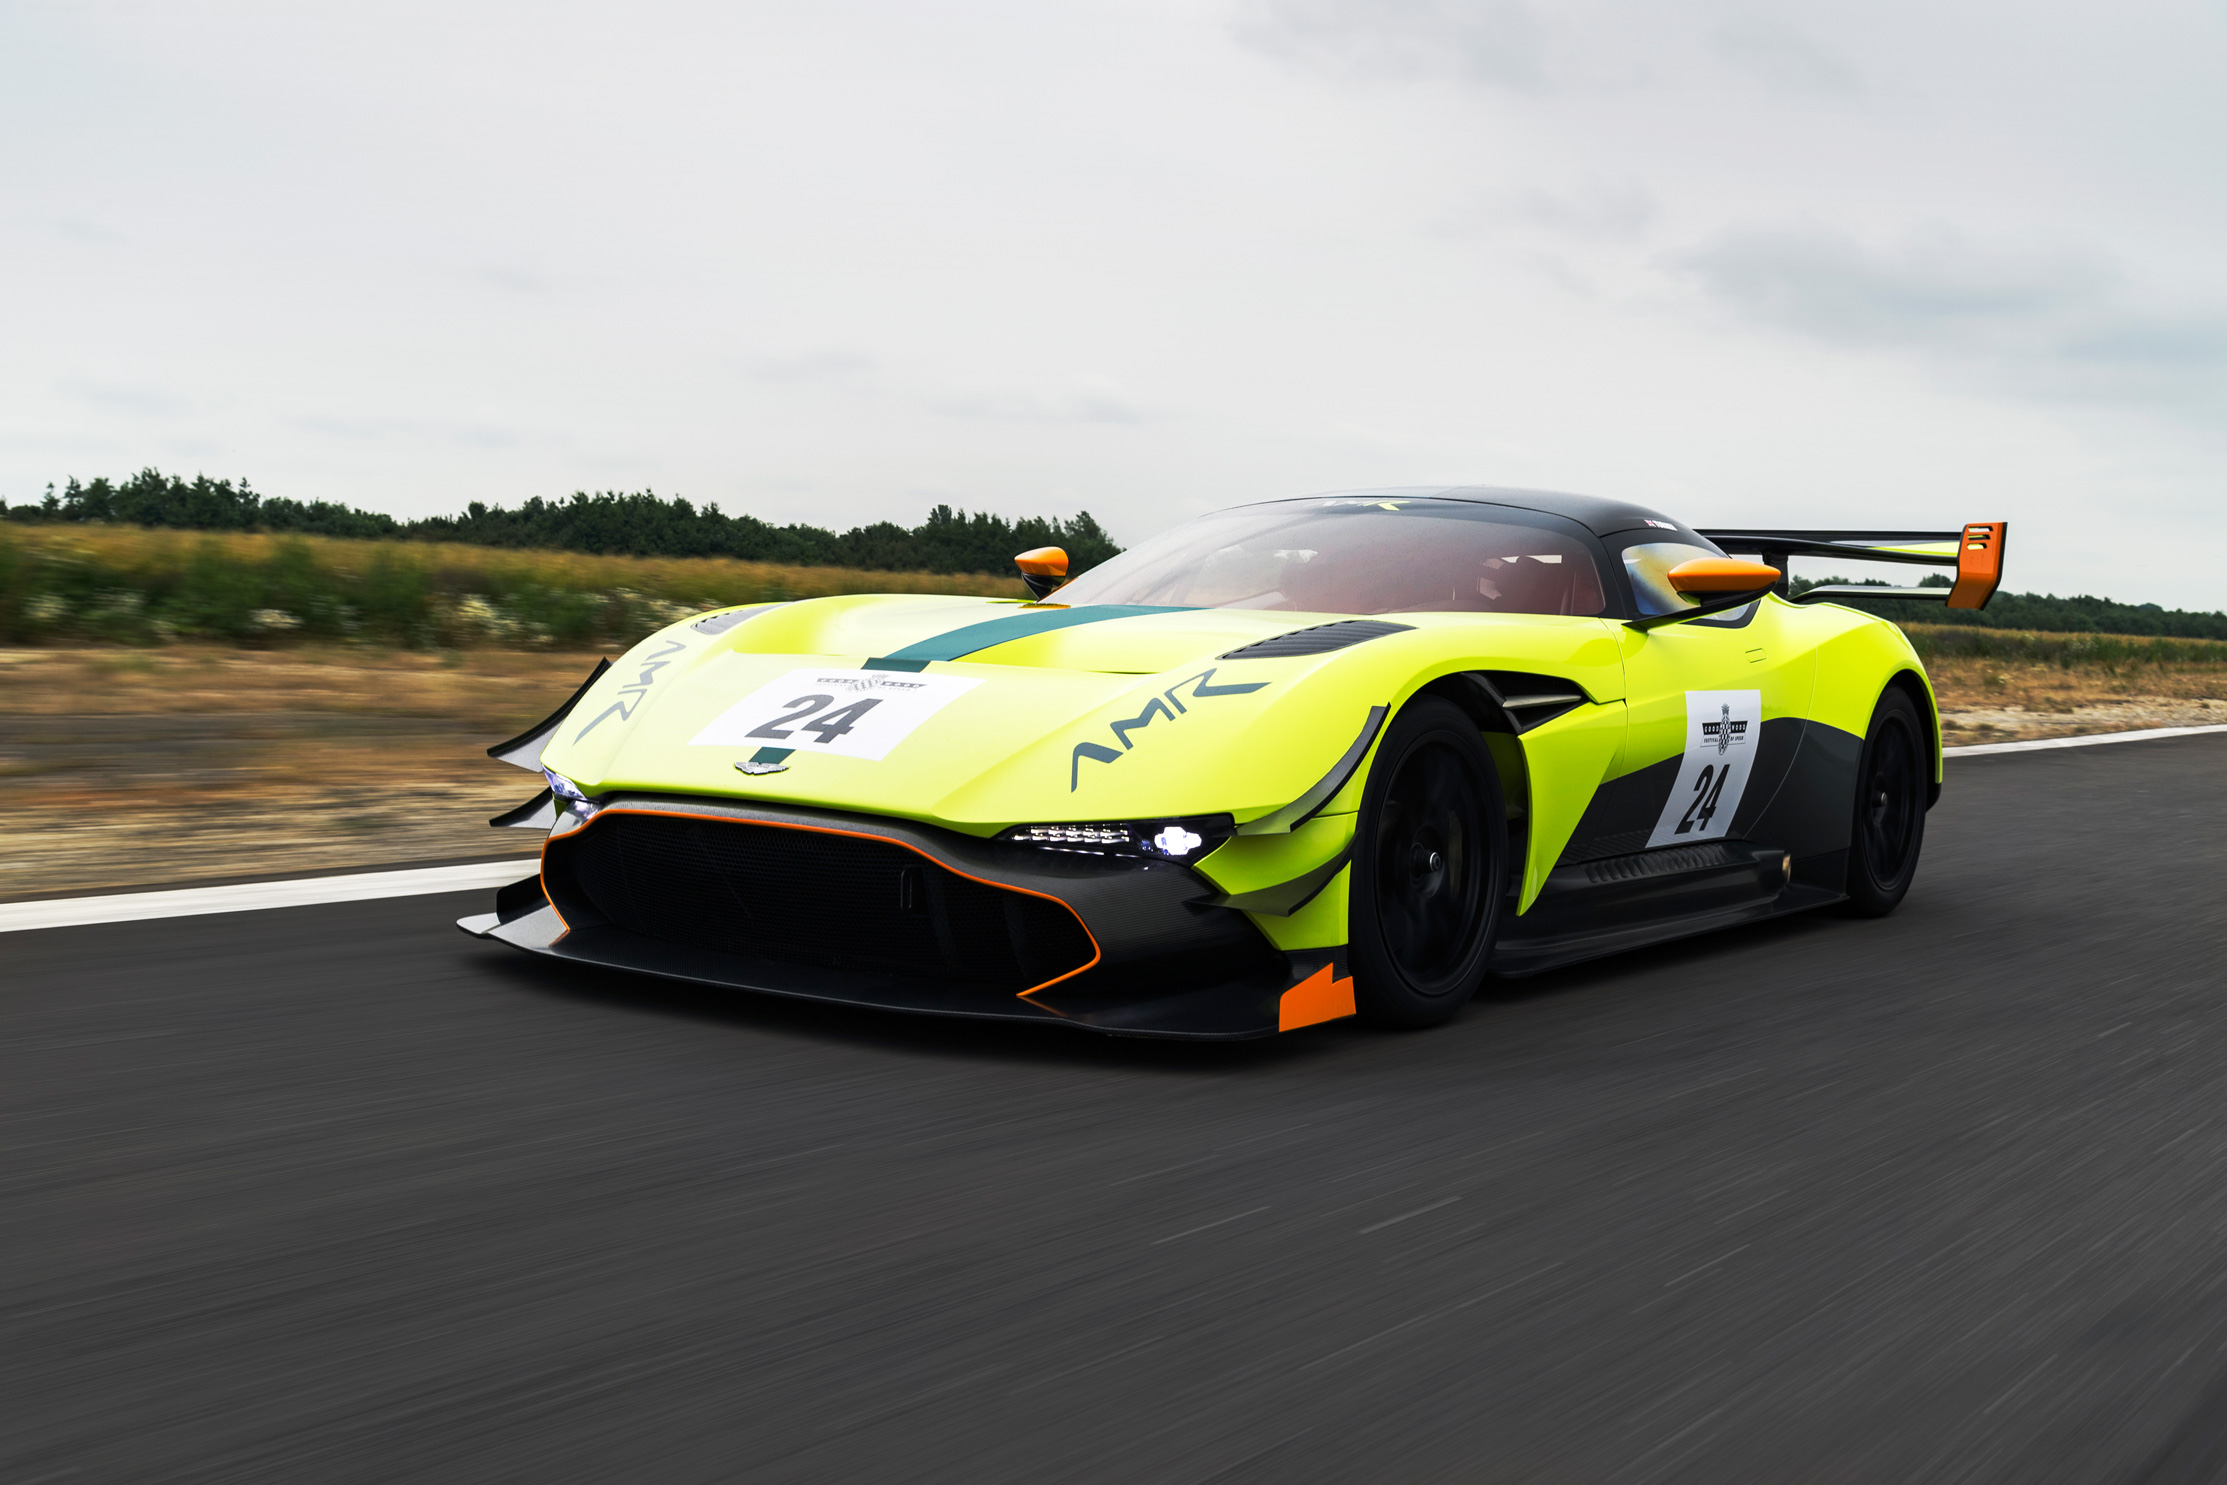 Aston Martin Vulcan Amr Pro Extremely Wild The Auto Loons